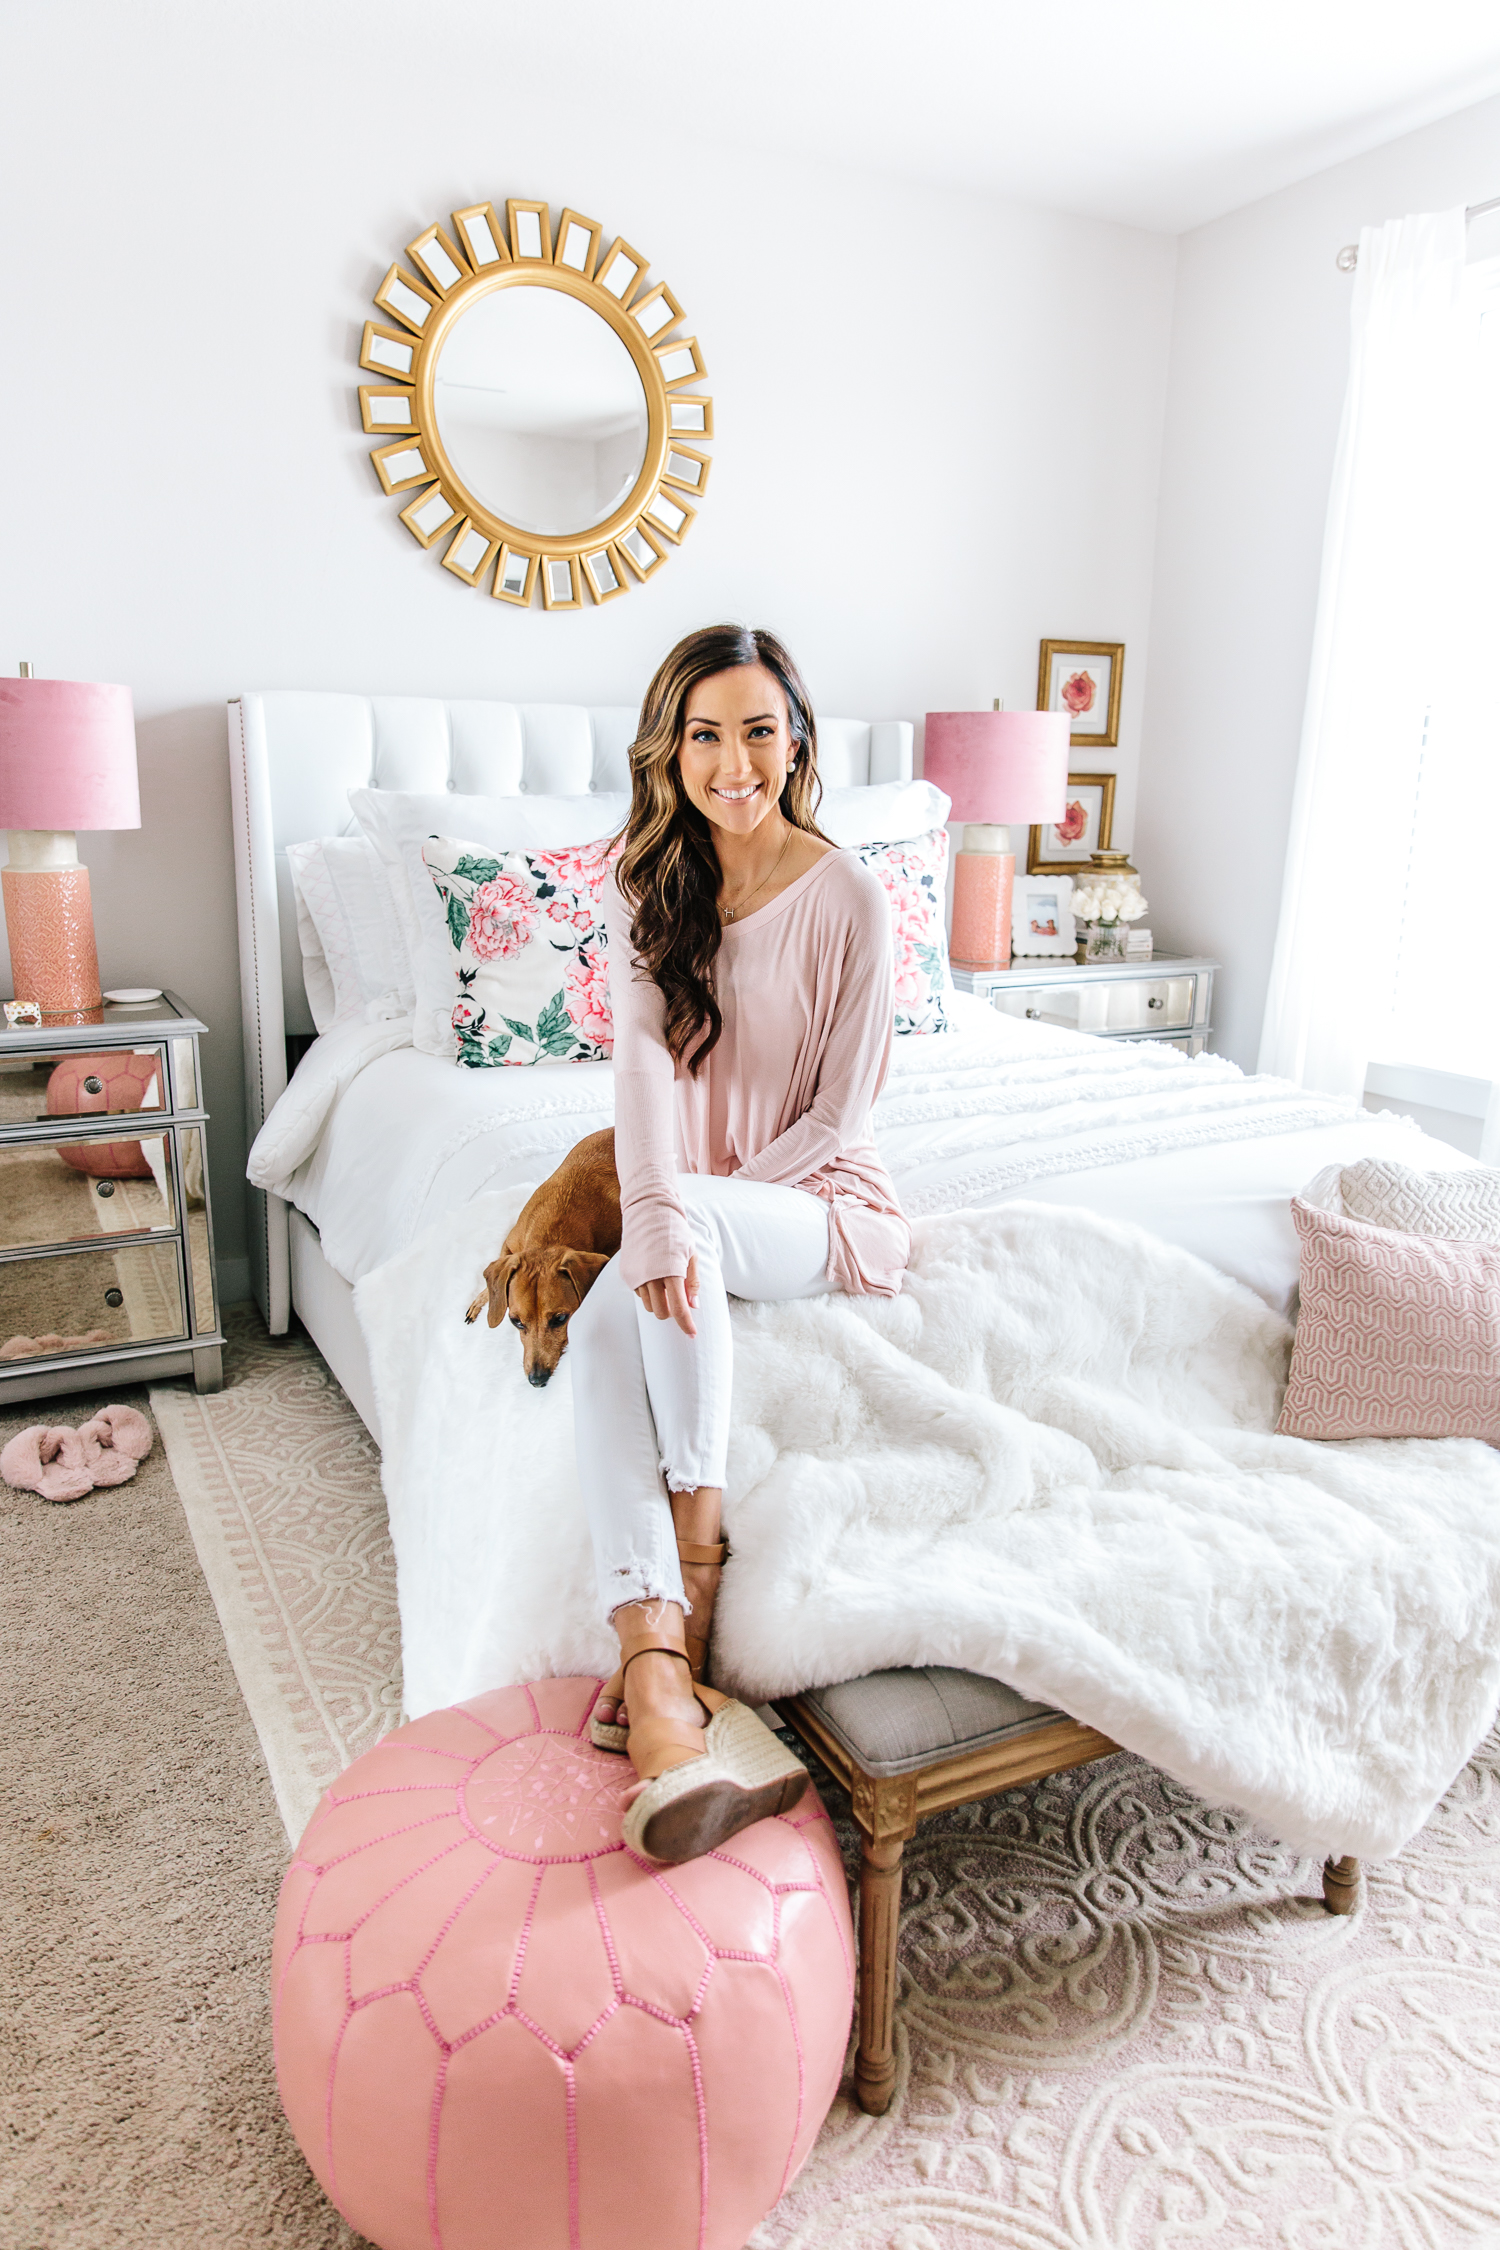 Bedroom Refresh with Affordable Buys from Walmart  Alyson Haley